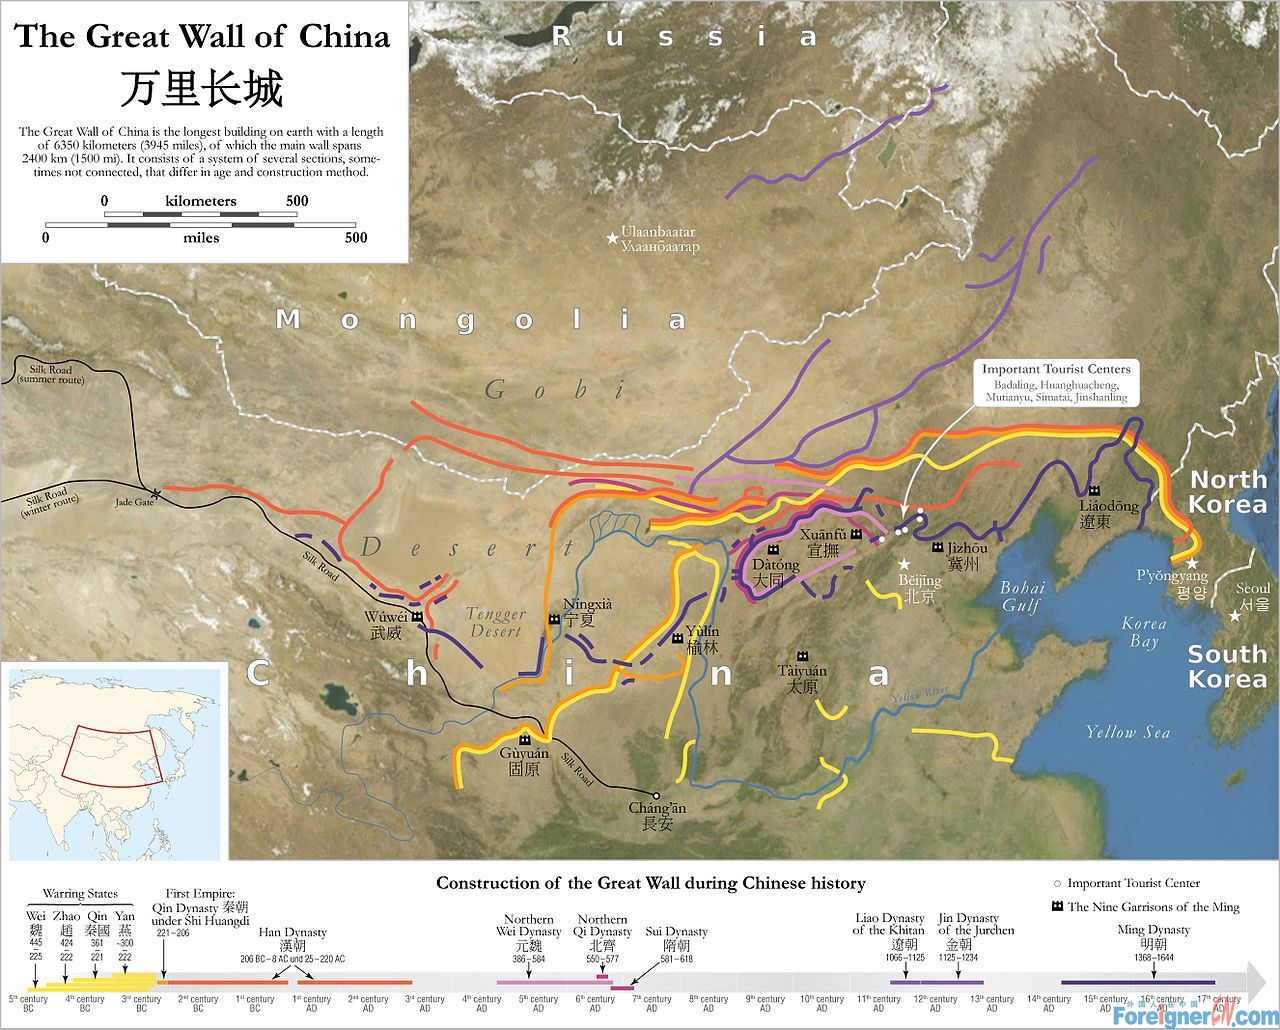 1280px-Map_of_the_Great_Wall_of_China